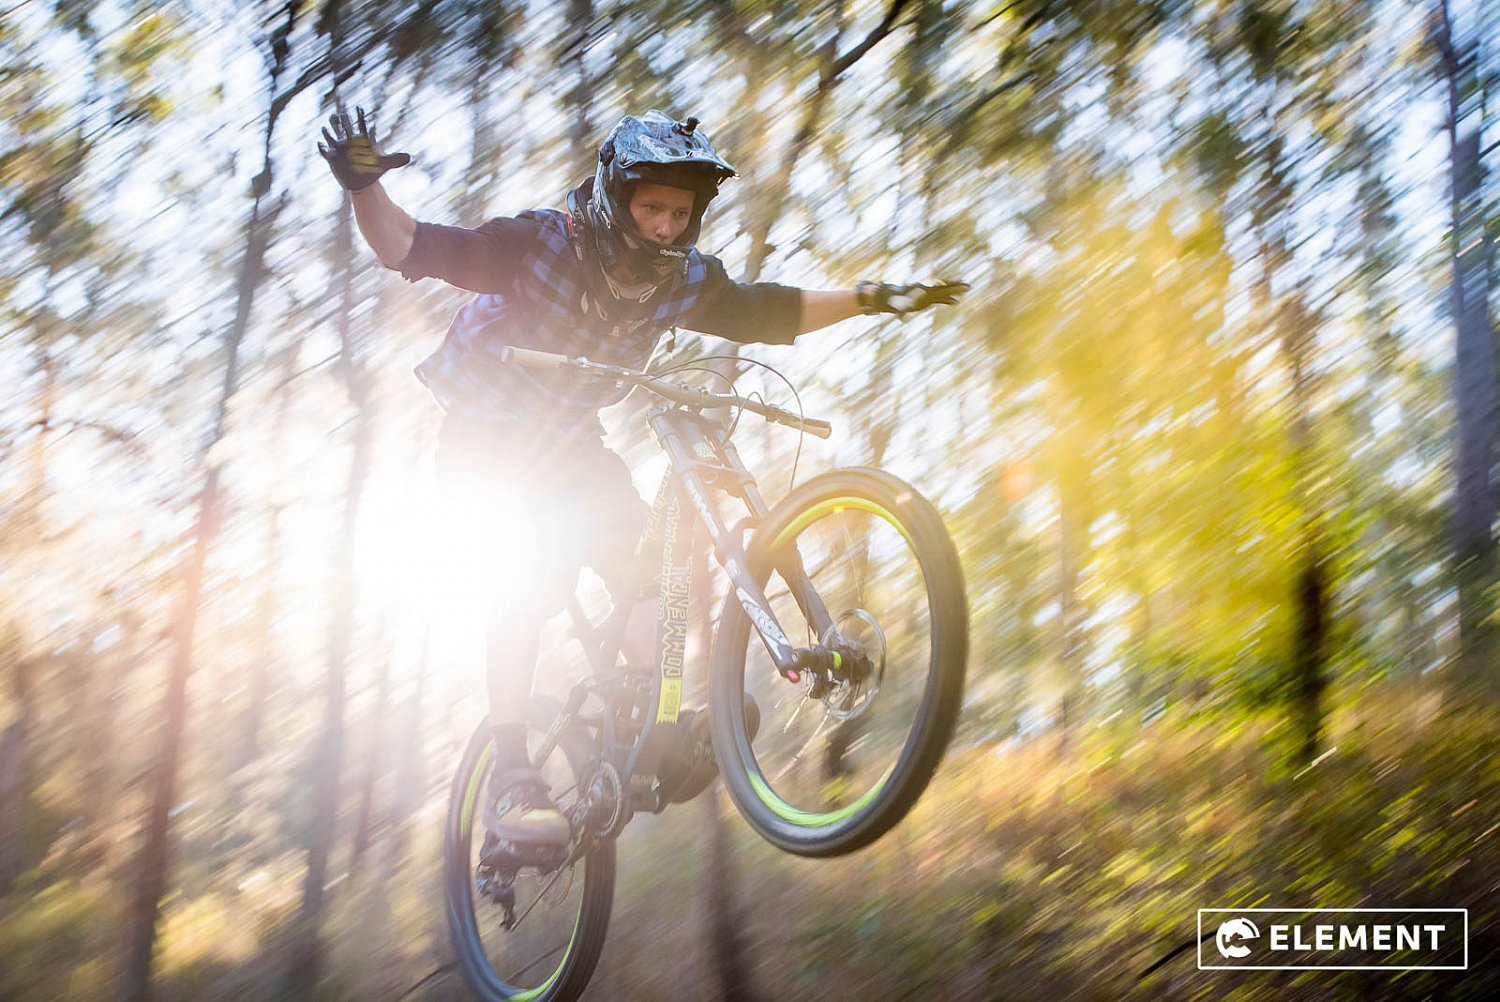 MTB Ride and Shoot Photography Workshop (1st March 2020) | LWR_8601_Lachlan_Ryan_25-06-2016.jpg